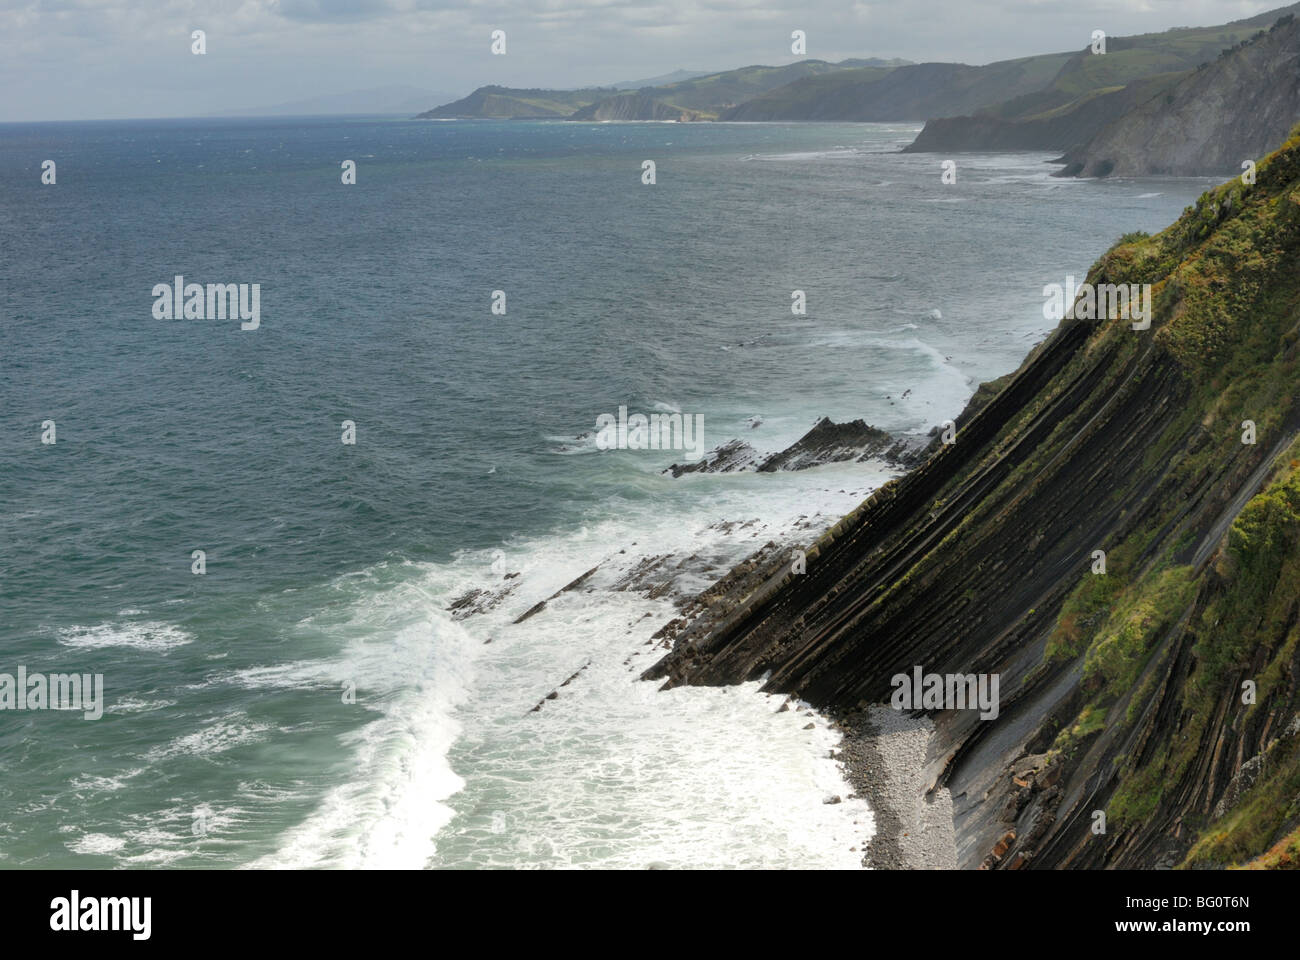 View from high point on the wild Basque coast, Euskadi, Spain, Europe - Stock Image